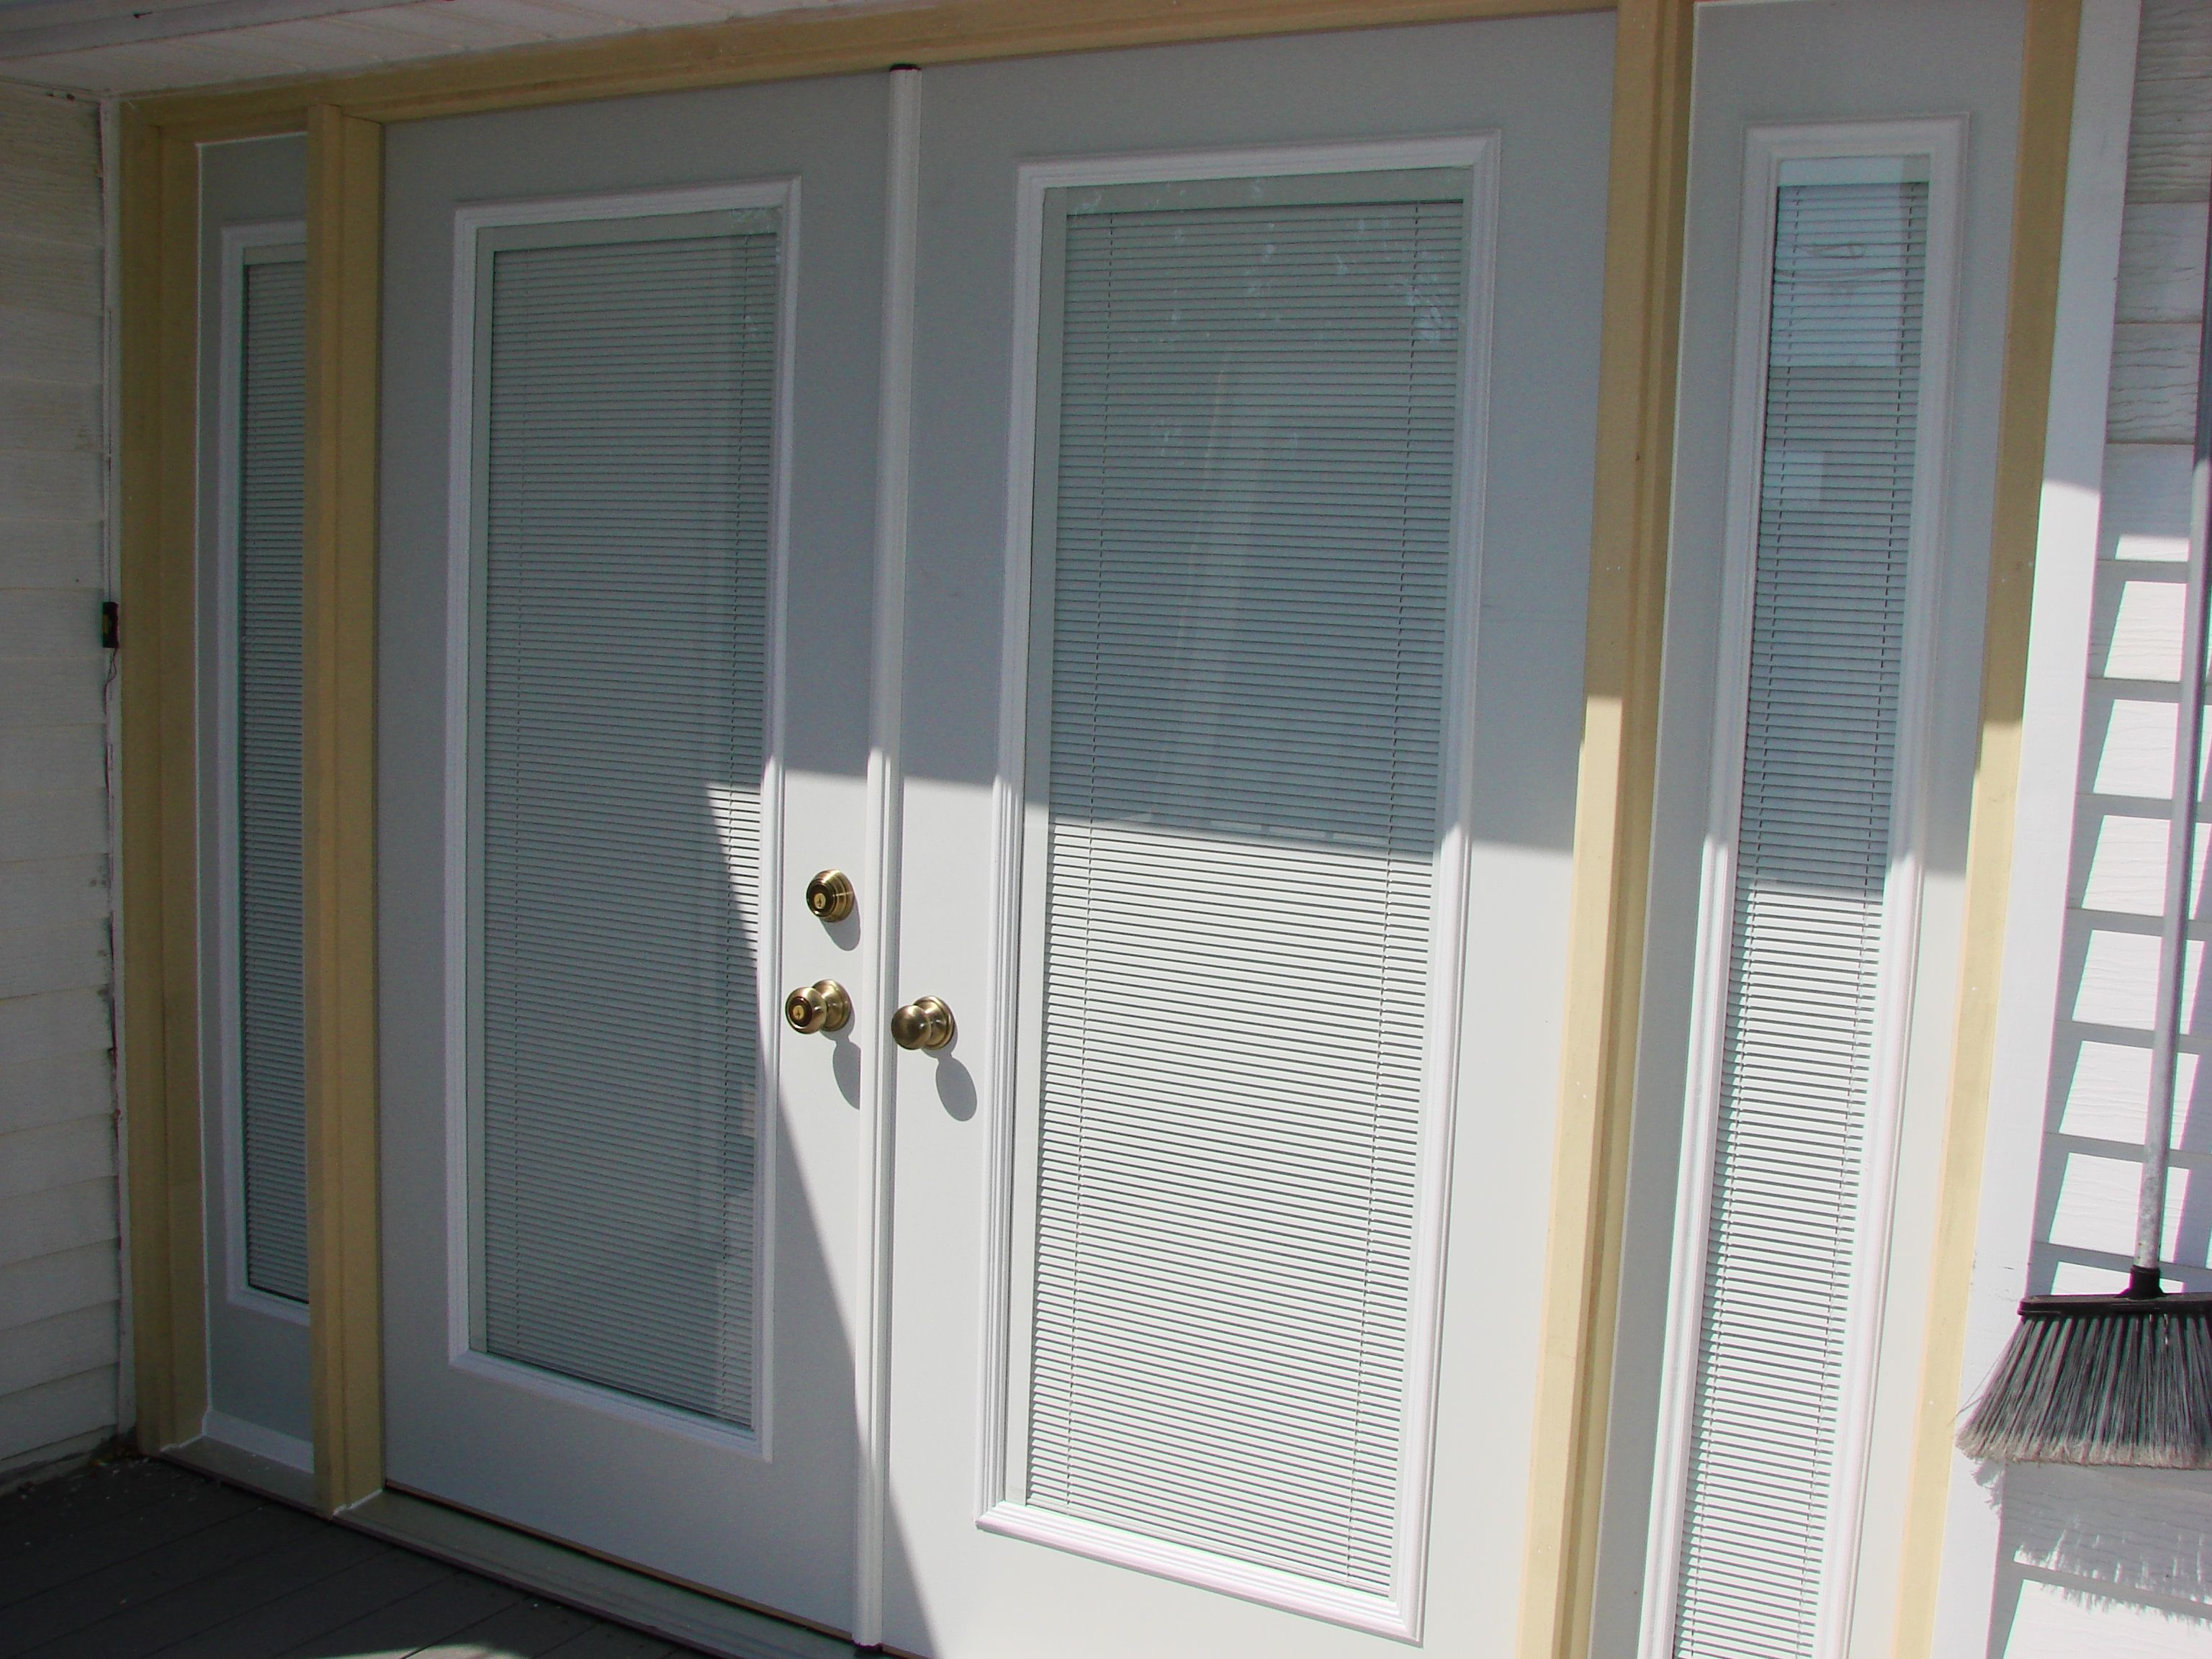 Exterior doors with mini blinds inside thefallguyediting